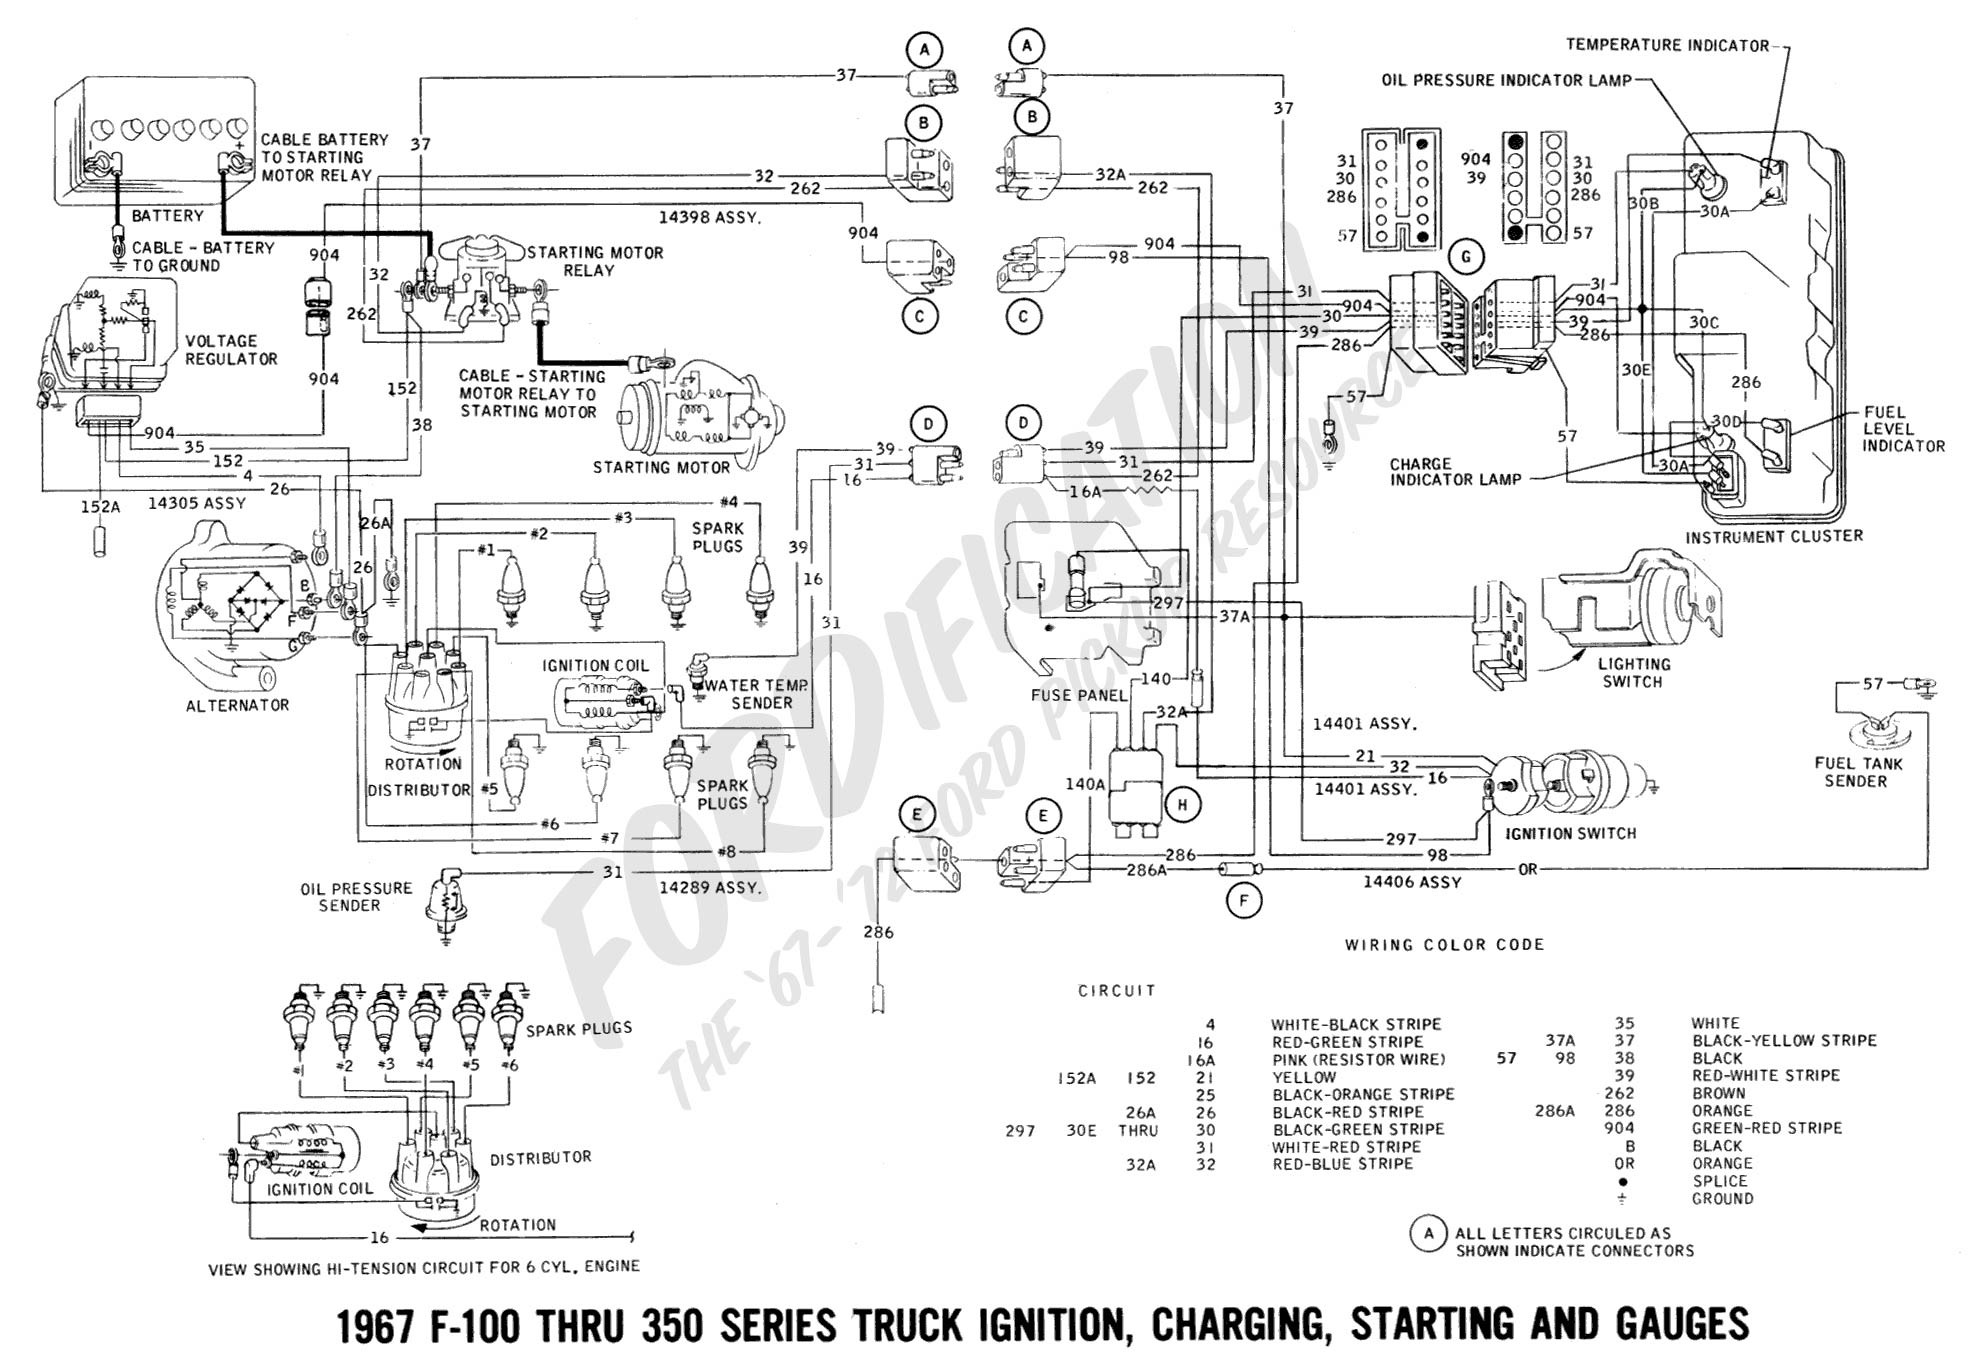 Ls3 Wiring Diagram Library International Scout 800 Diagrams Throttle Schematic Rh Ogmconsulting Co Engine Ls1 Starter